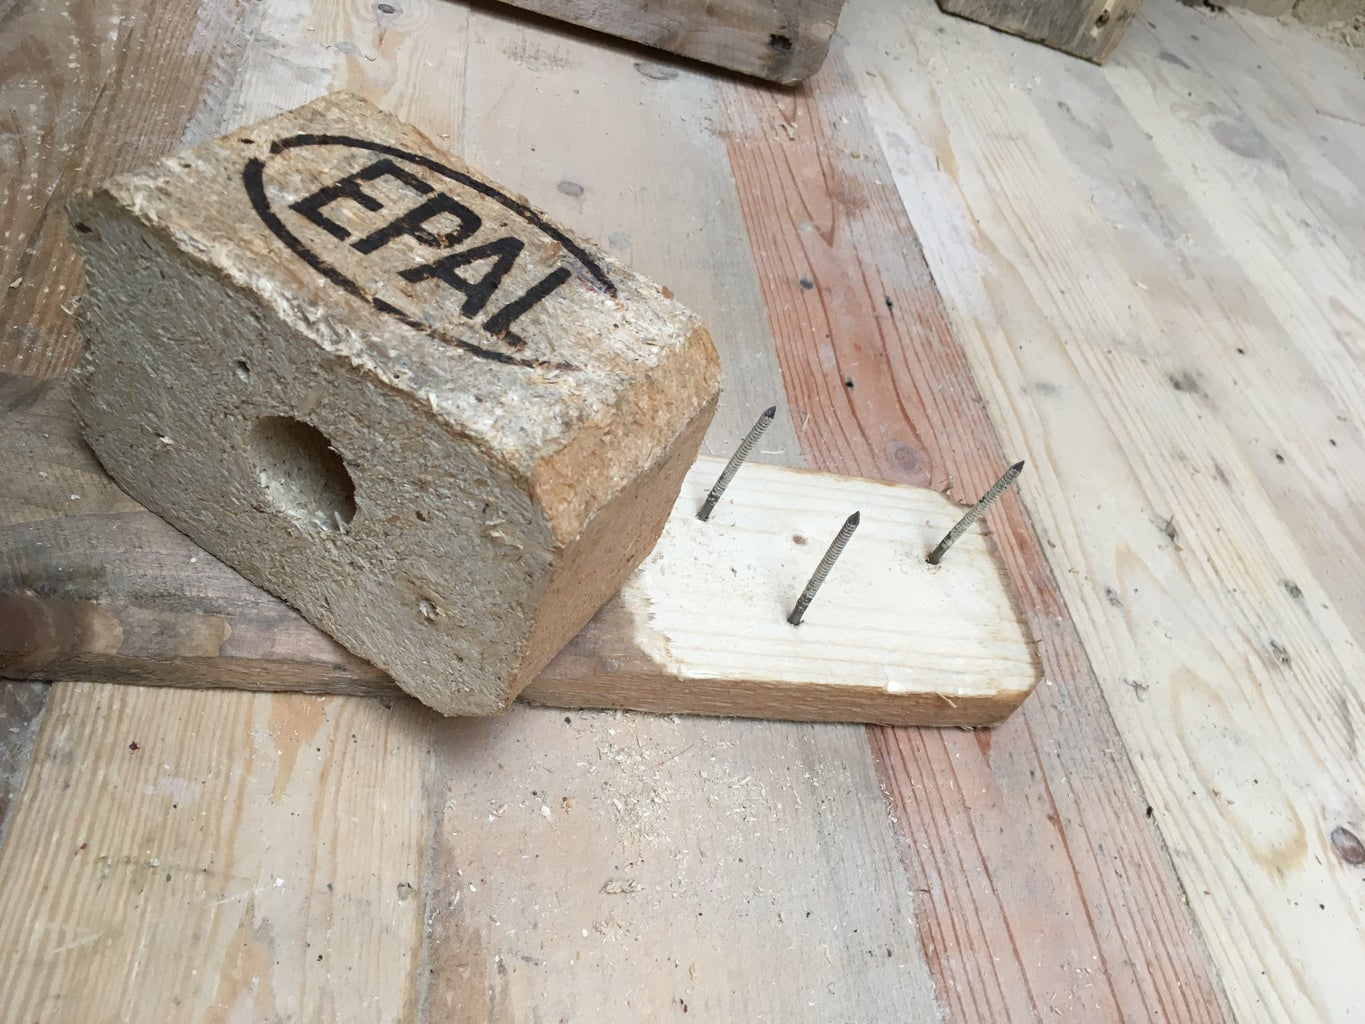 HOW TO DISASSEMBLE a PALLET - STEP 2